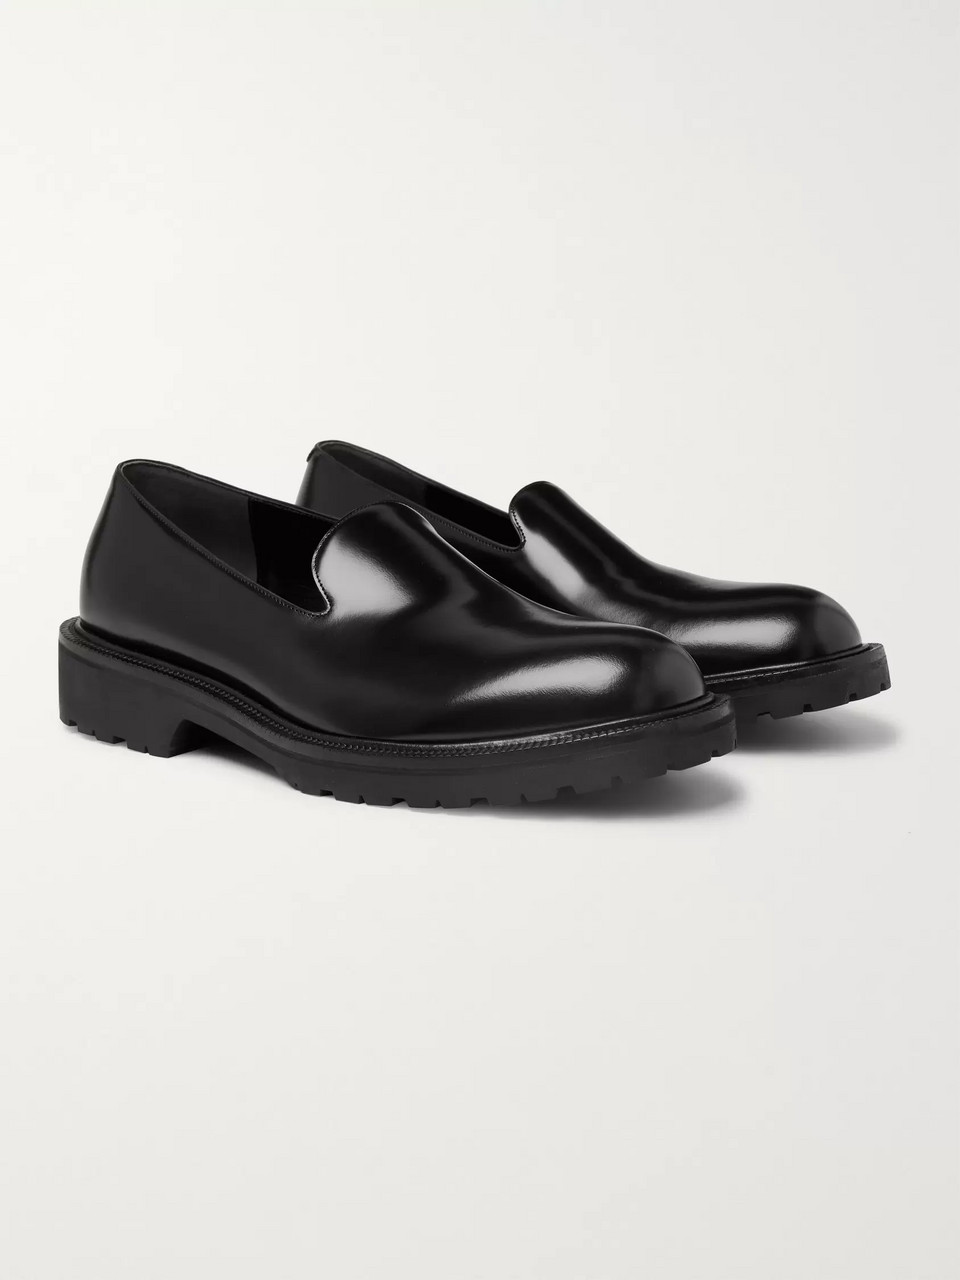 Dries Van Noten Polished-Leather Loafers